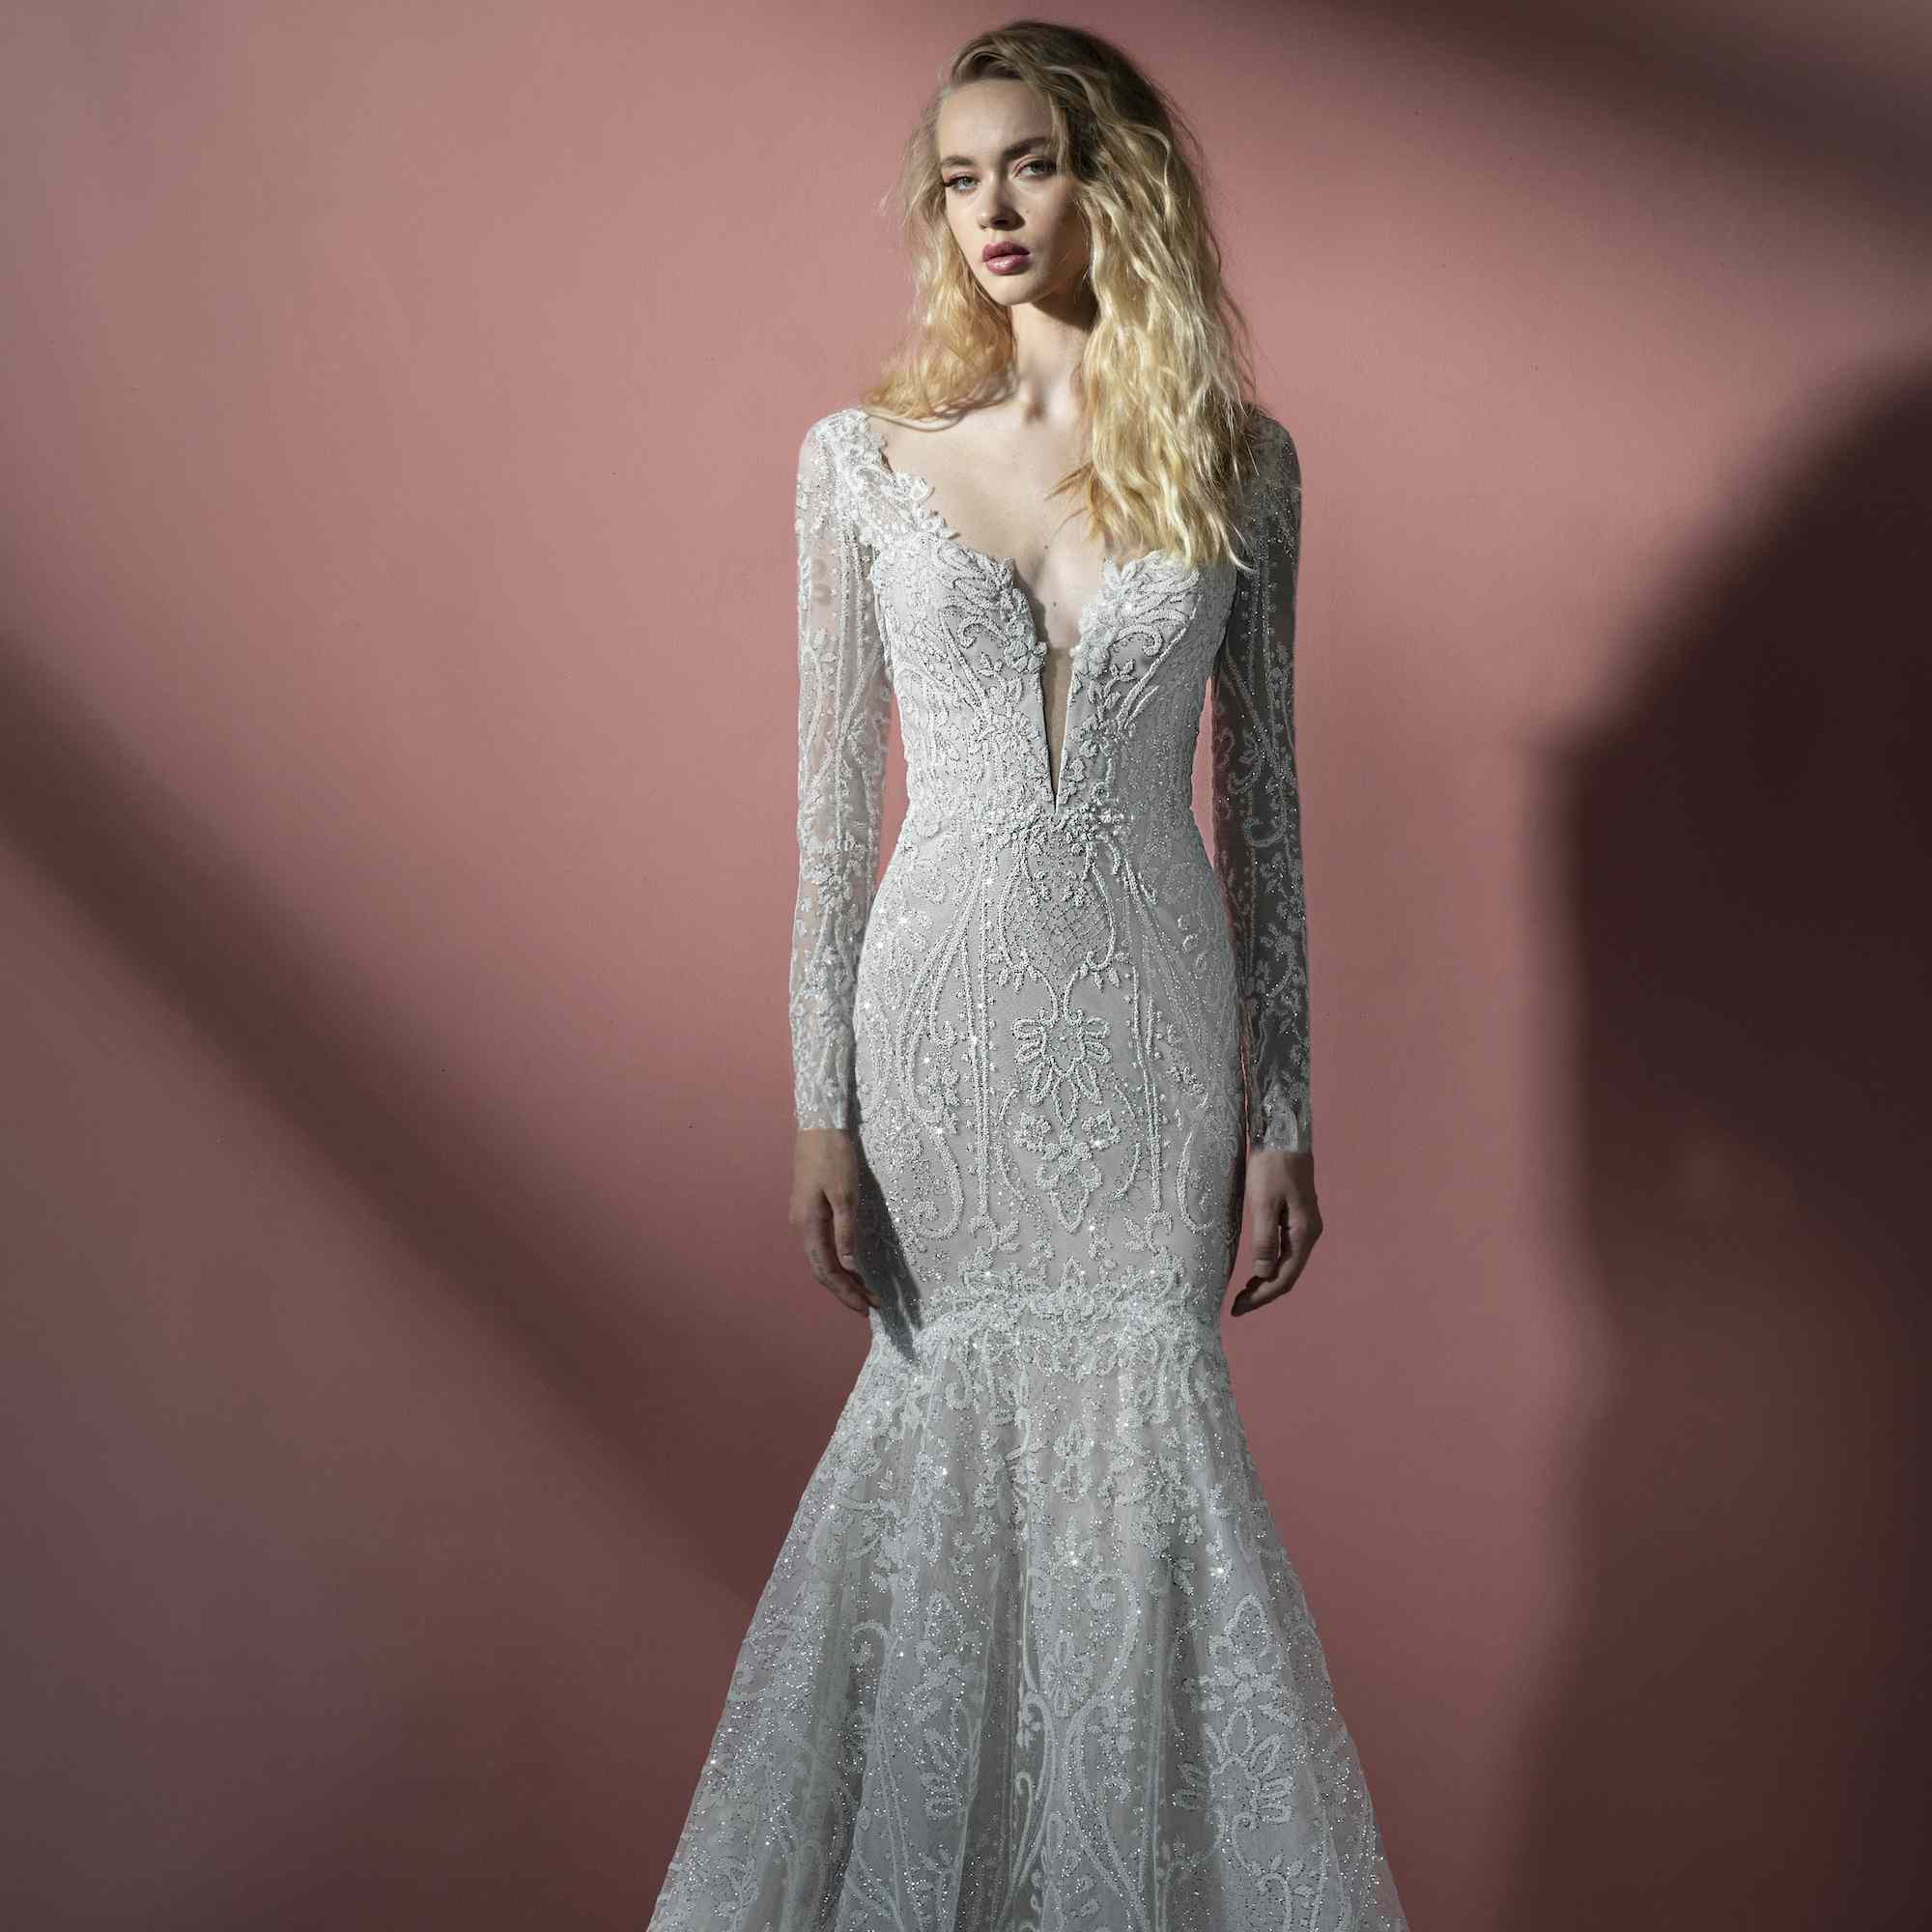 Kit long sleeve fit-and-flare wedding dress